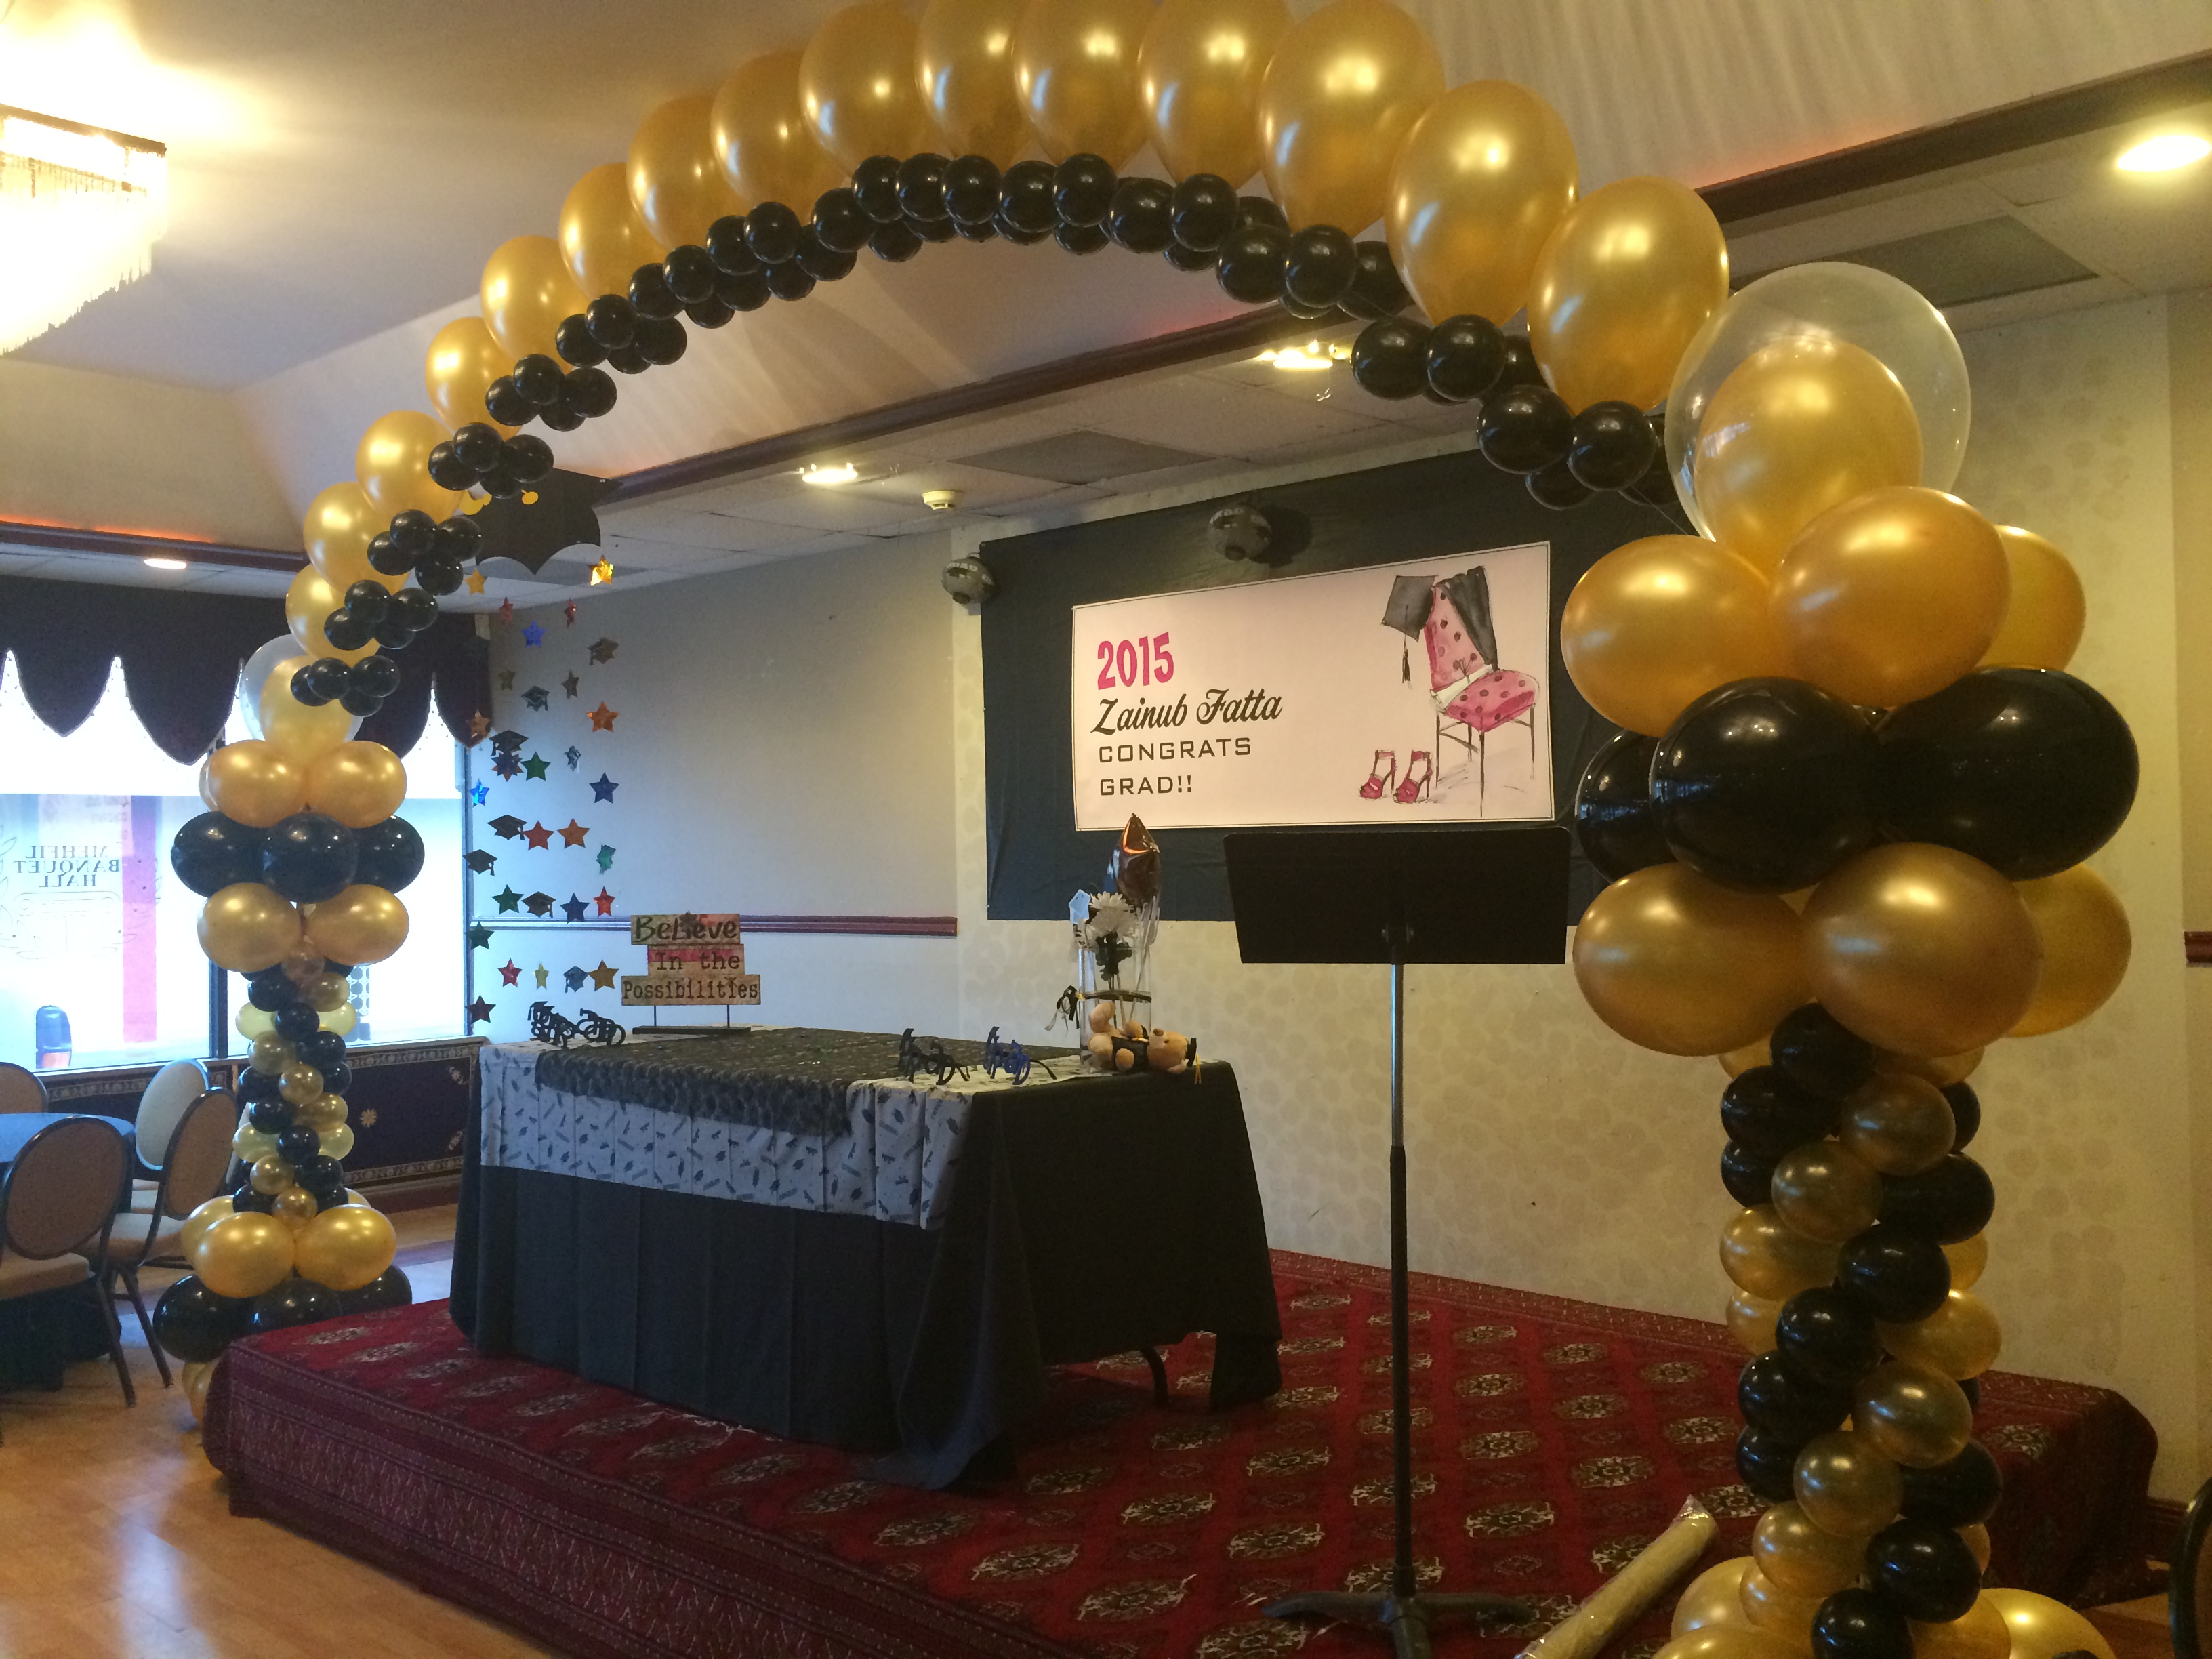 Black & Gold Balloon Arch